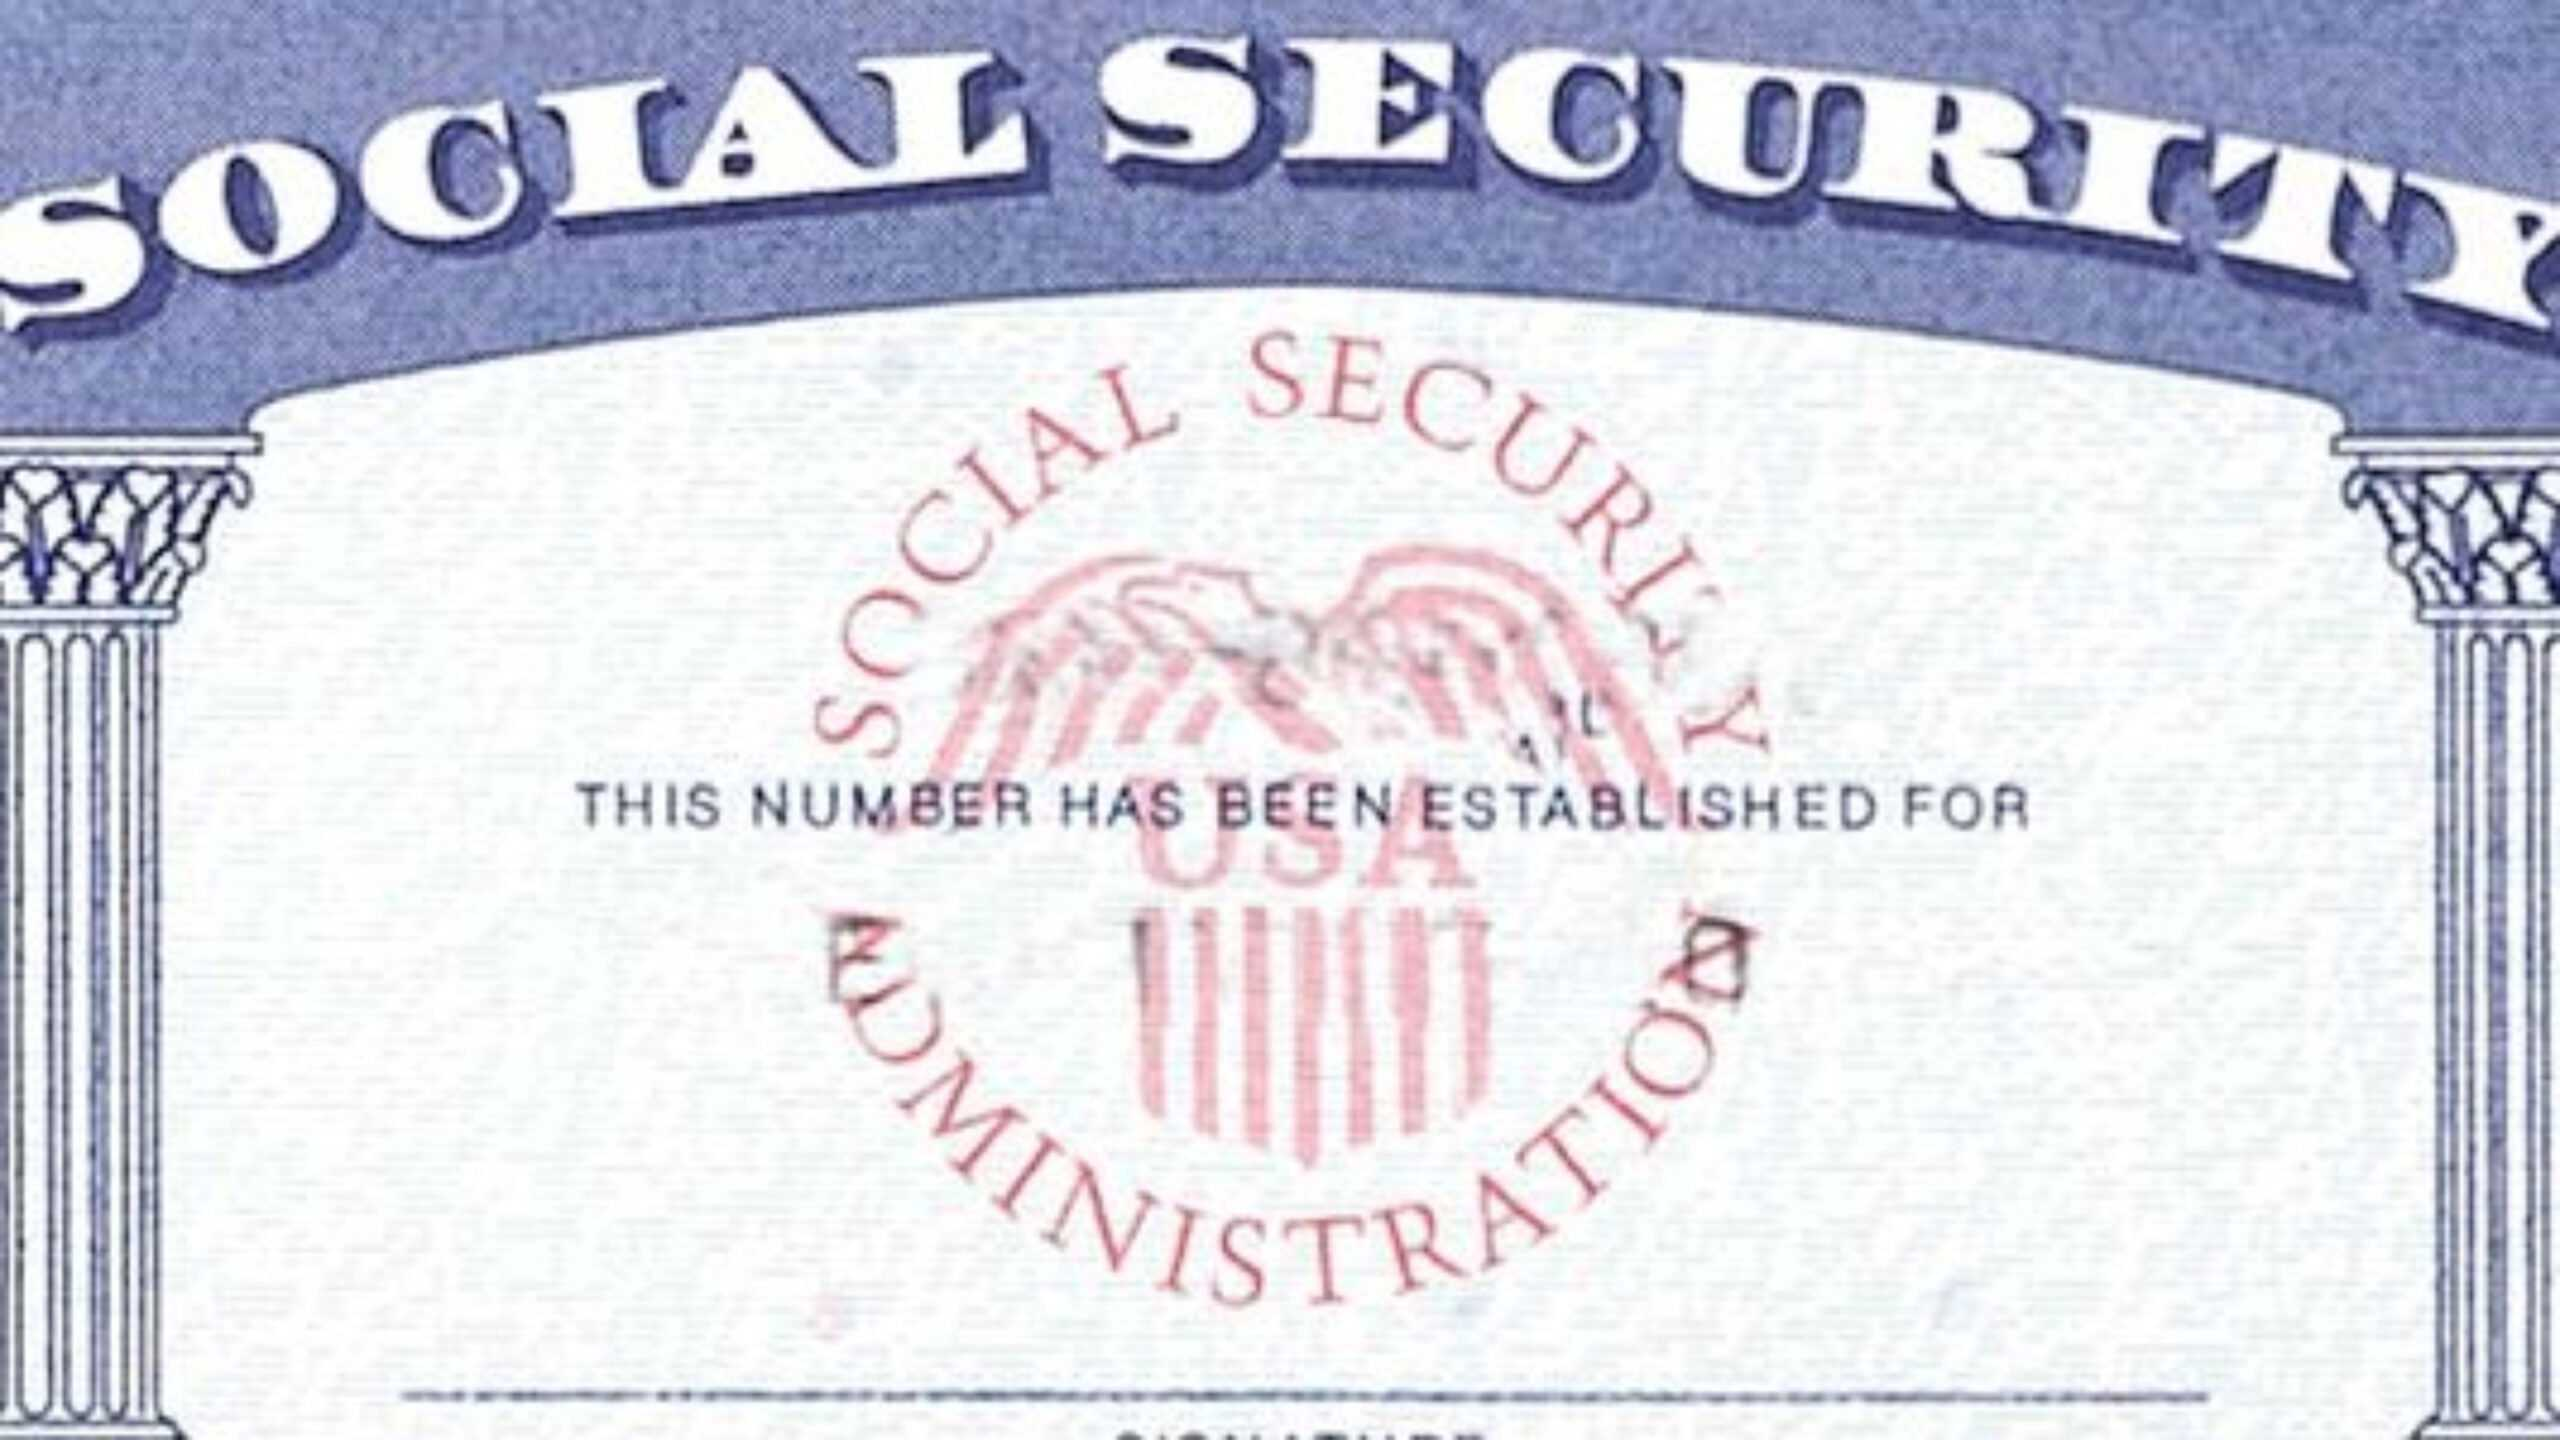 Blank Social Security Card Template Download - Great Inside Blank Social Security Card Template Download